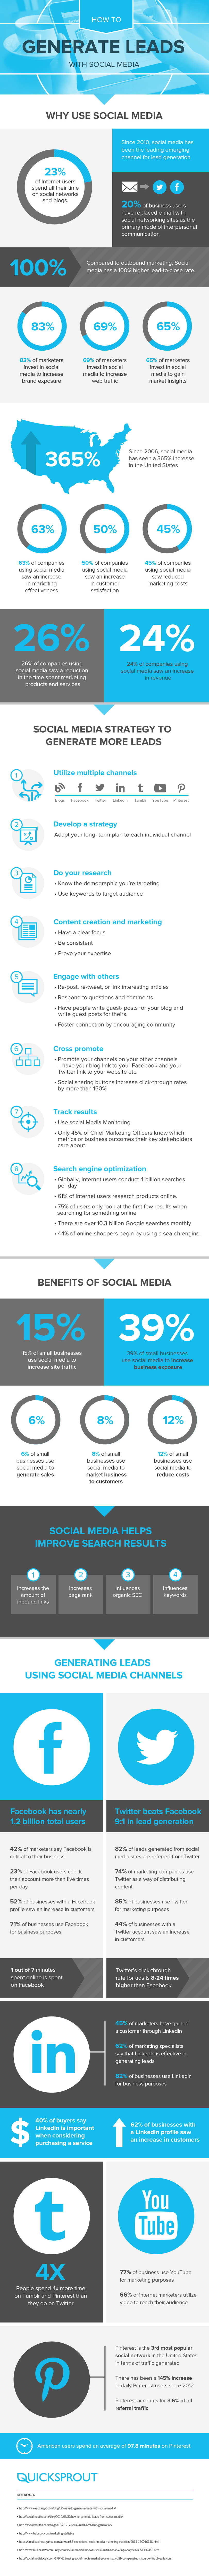 generate_leads_with_social_media